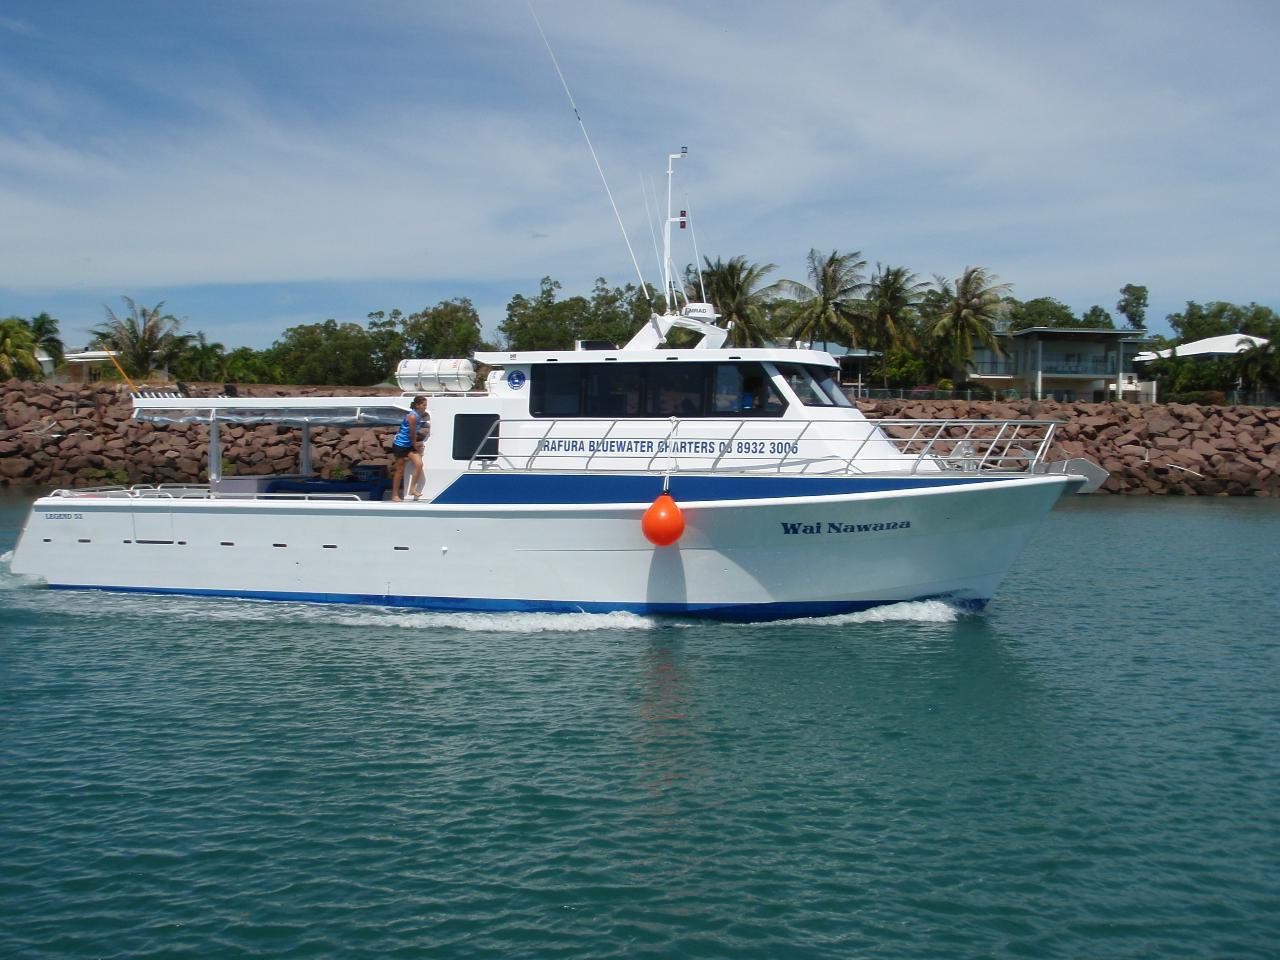 5 Day Extended Live aboard SOLE BOAT Charter (MAX 10 PERSONS)